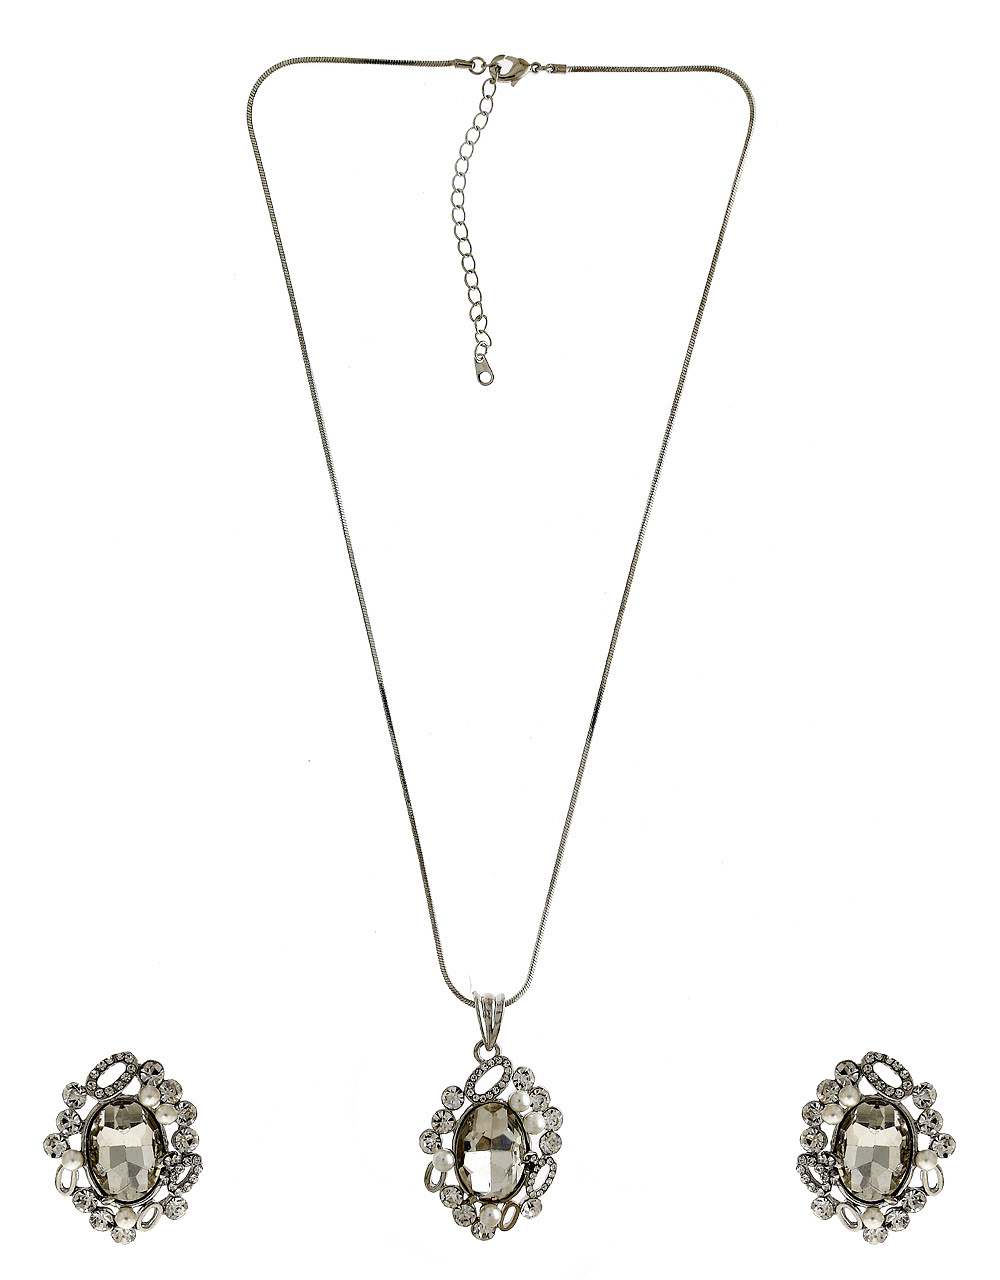 Floral Design Silver Finish Silver Finish Jewellery Pendant Set